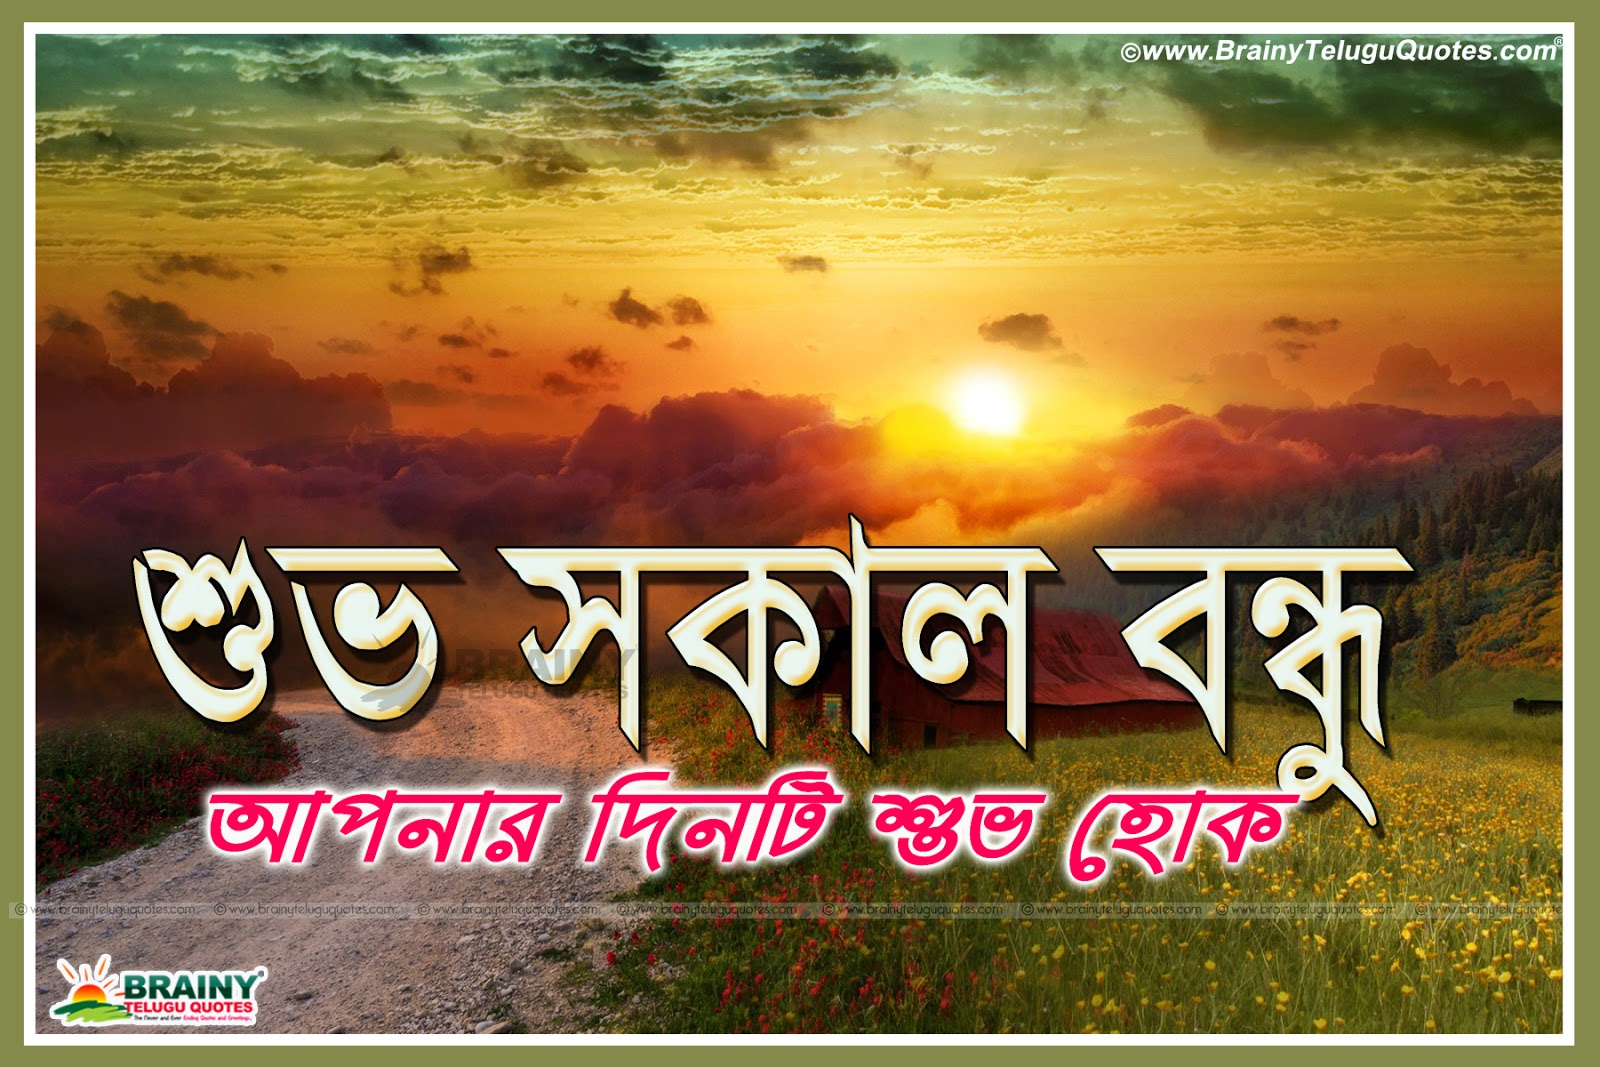 Bengali Good Morning Quotes On Life With Best Pictures Sayings